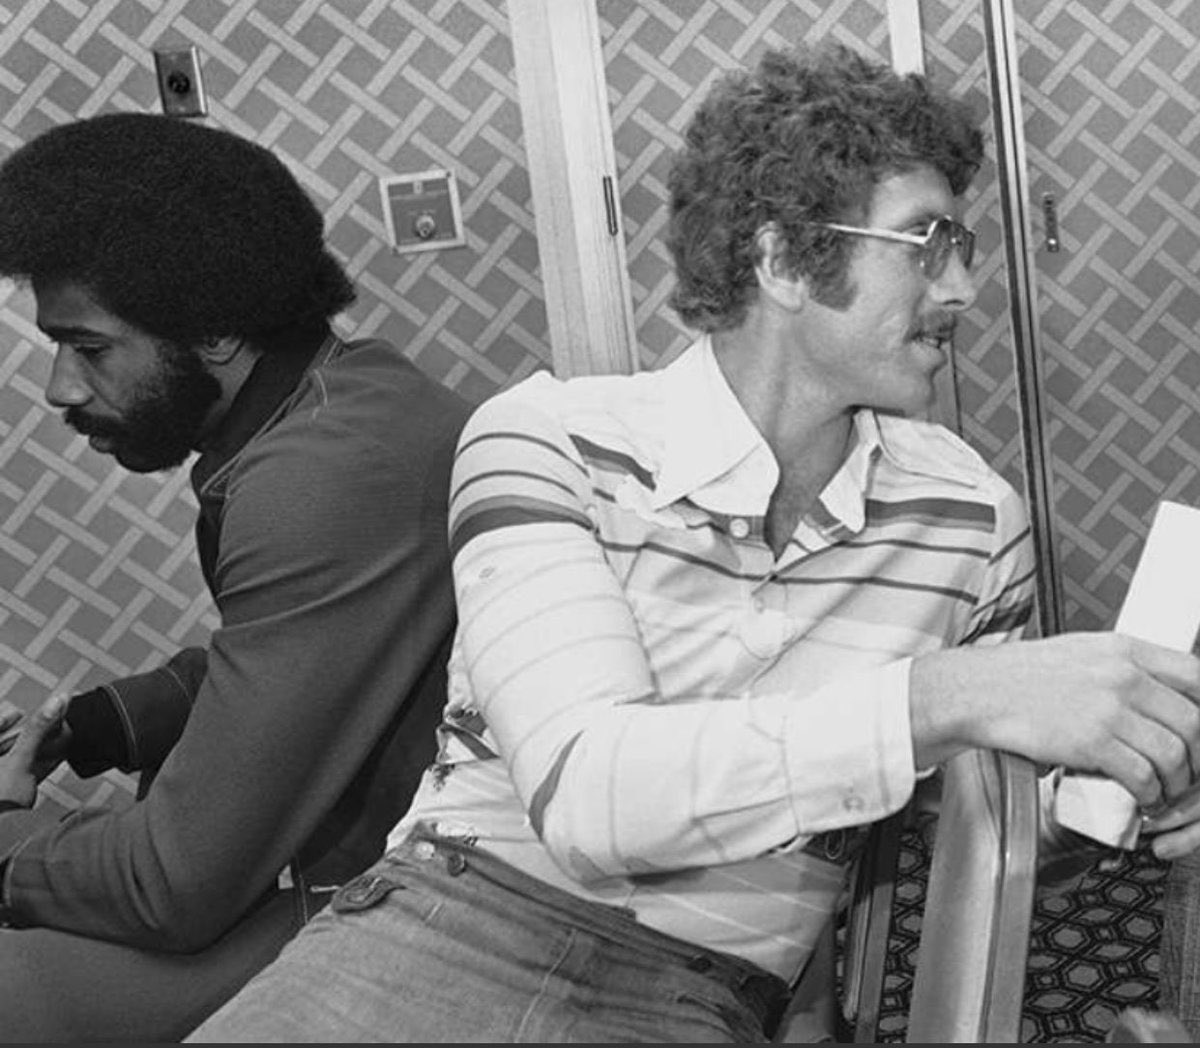 @MLB This picture from @Super70sSports definitively answers that question. @Phillies #Phillies @BoogSciambi